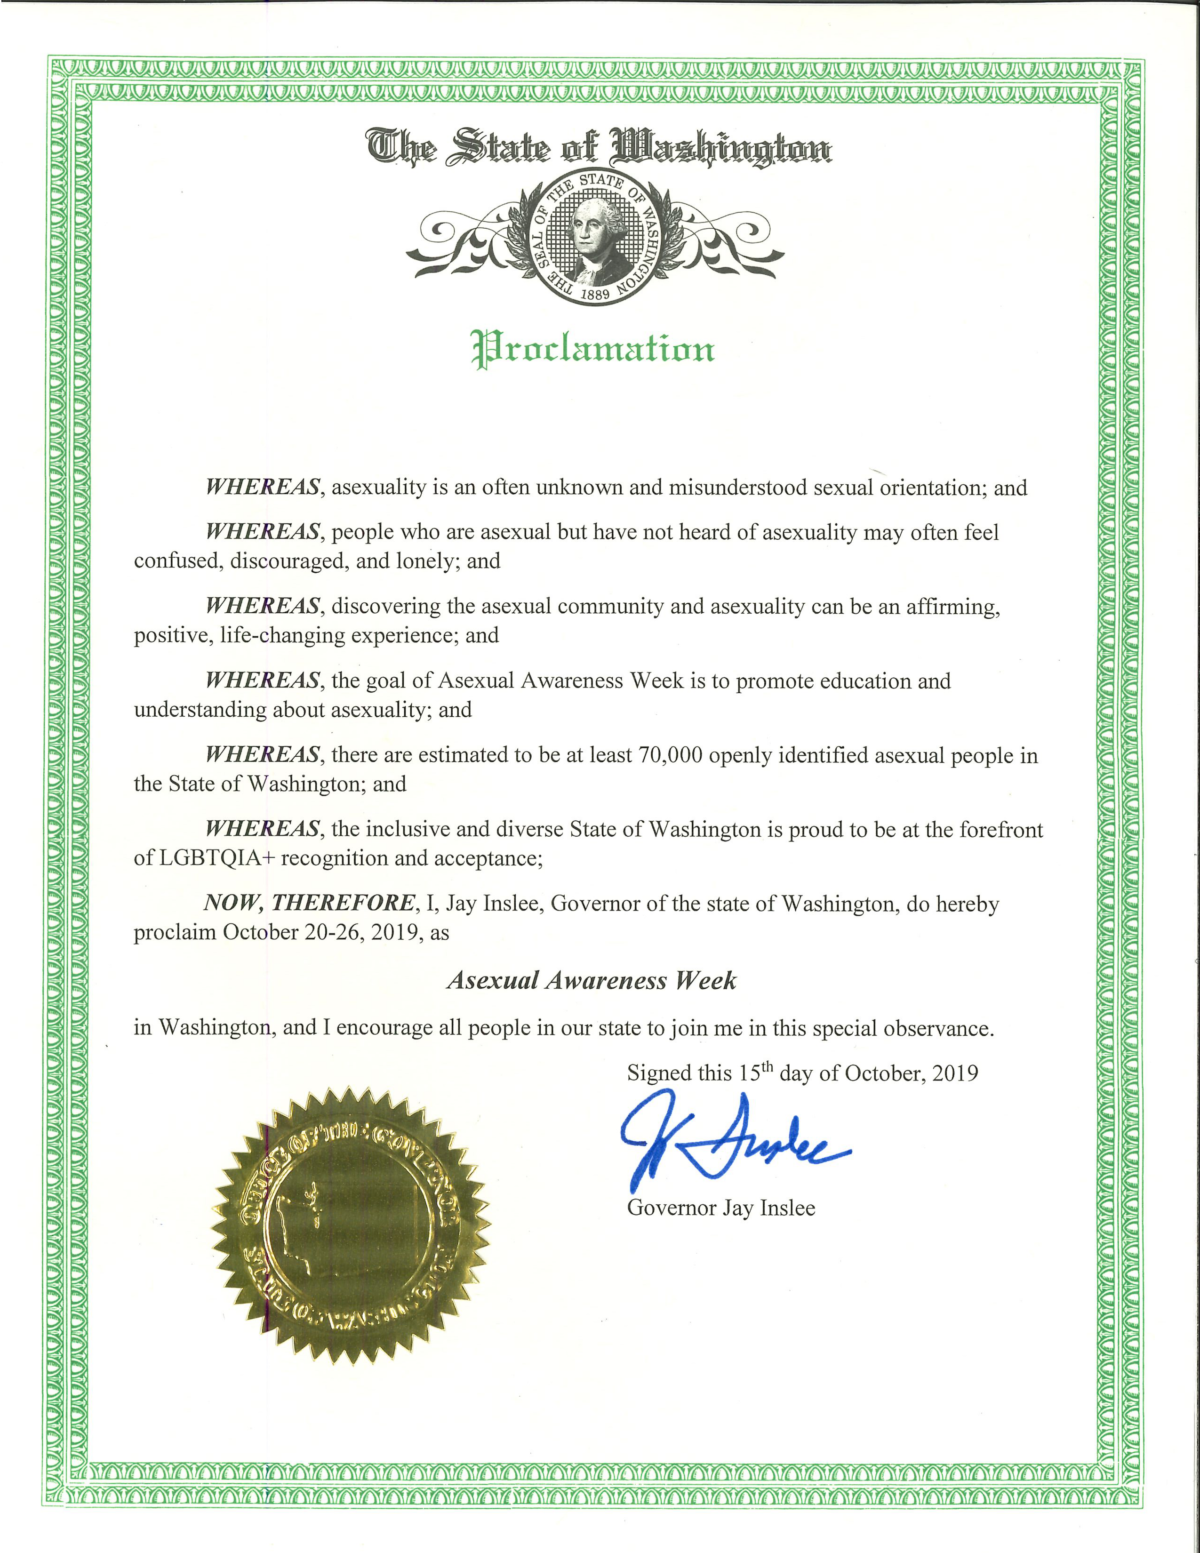 Washington Becomes First State to Recognize Asexual Awareness Week!